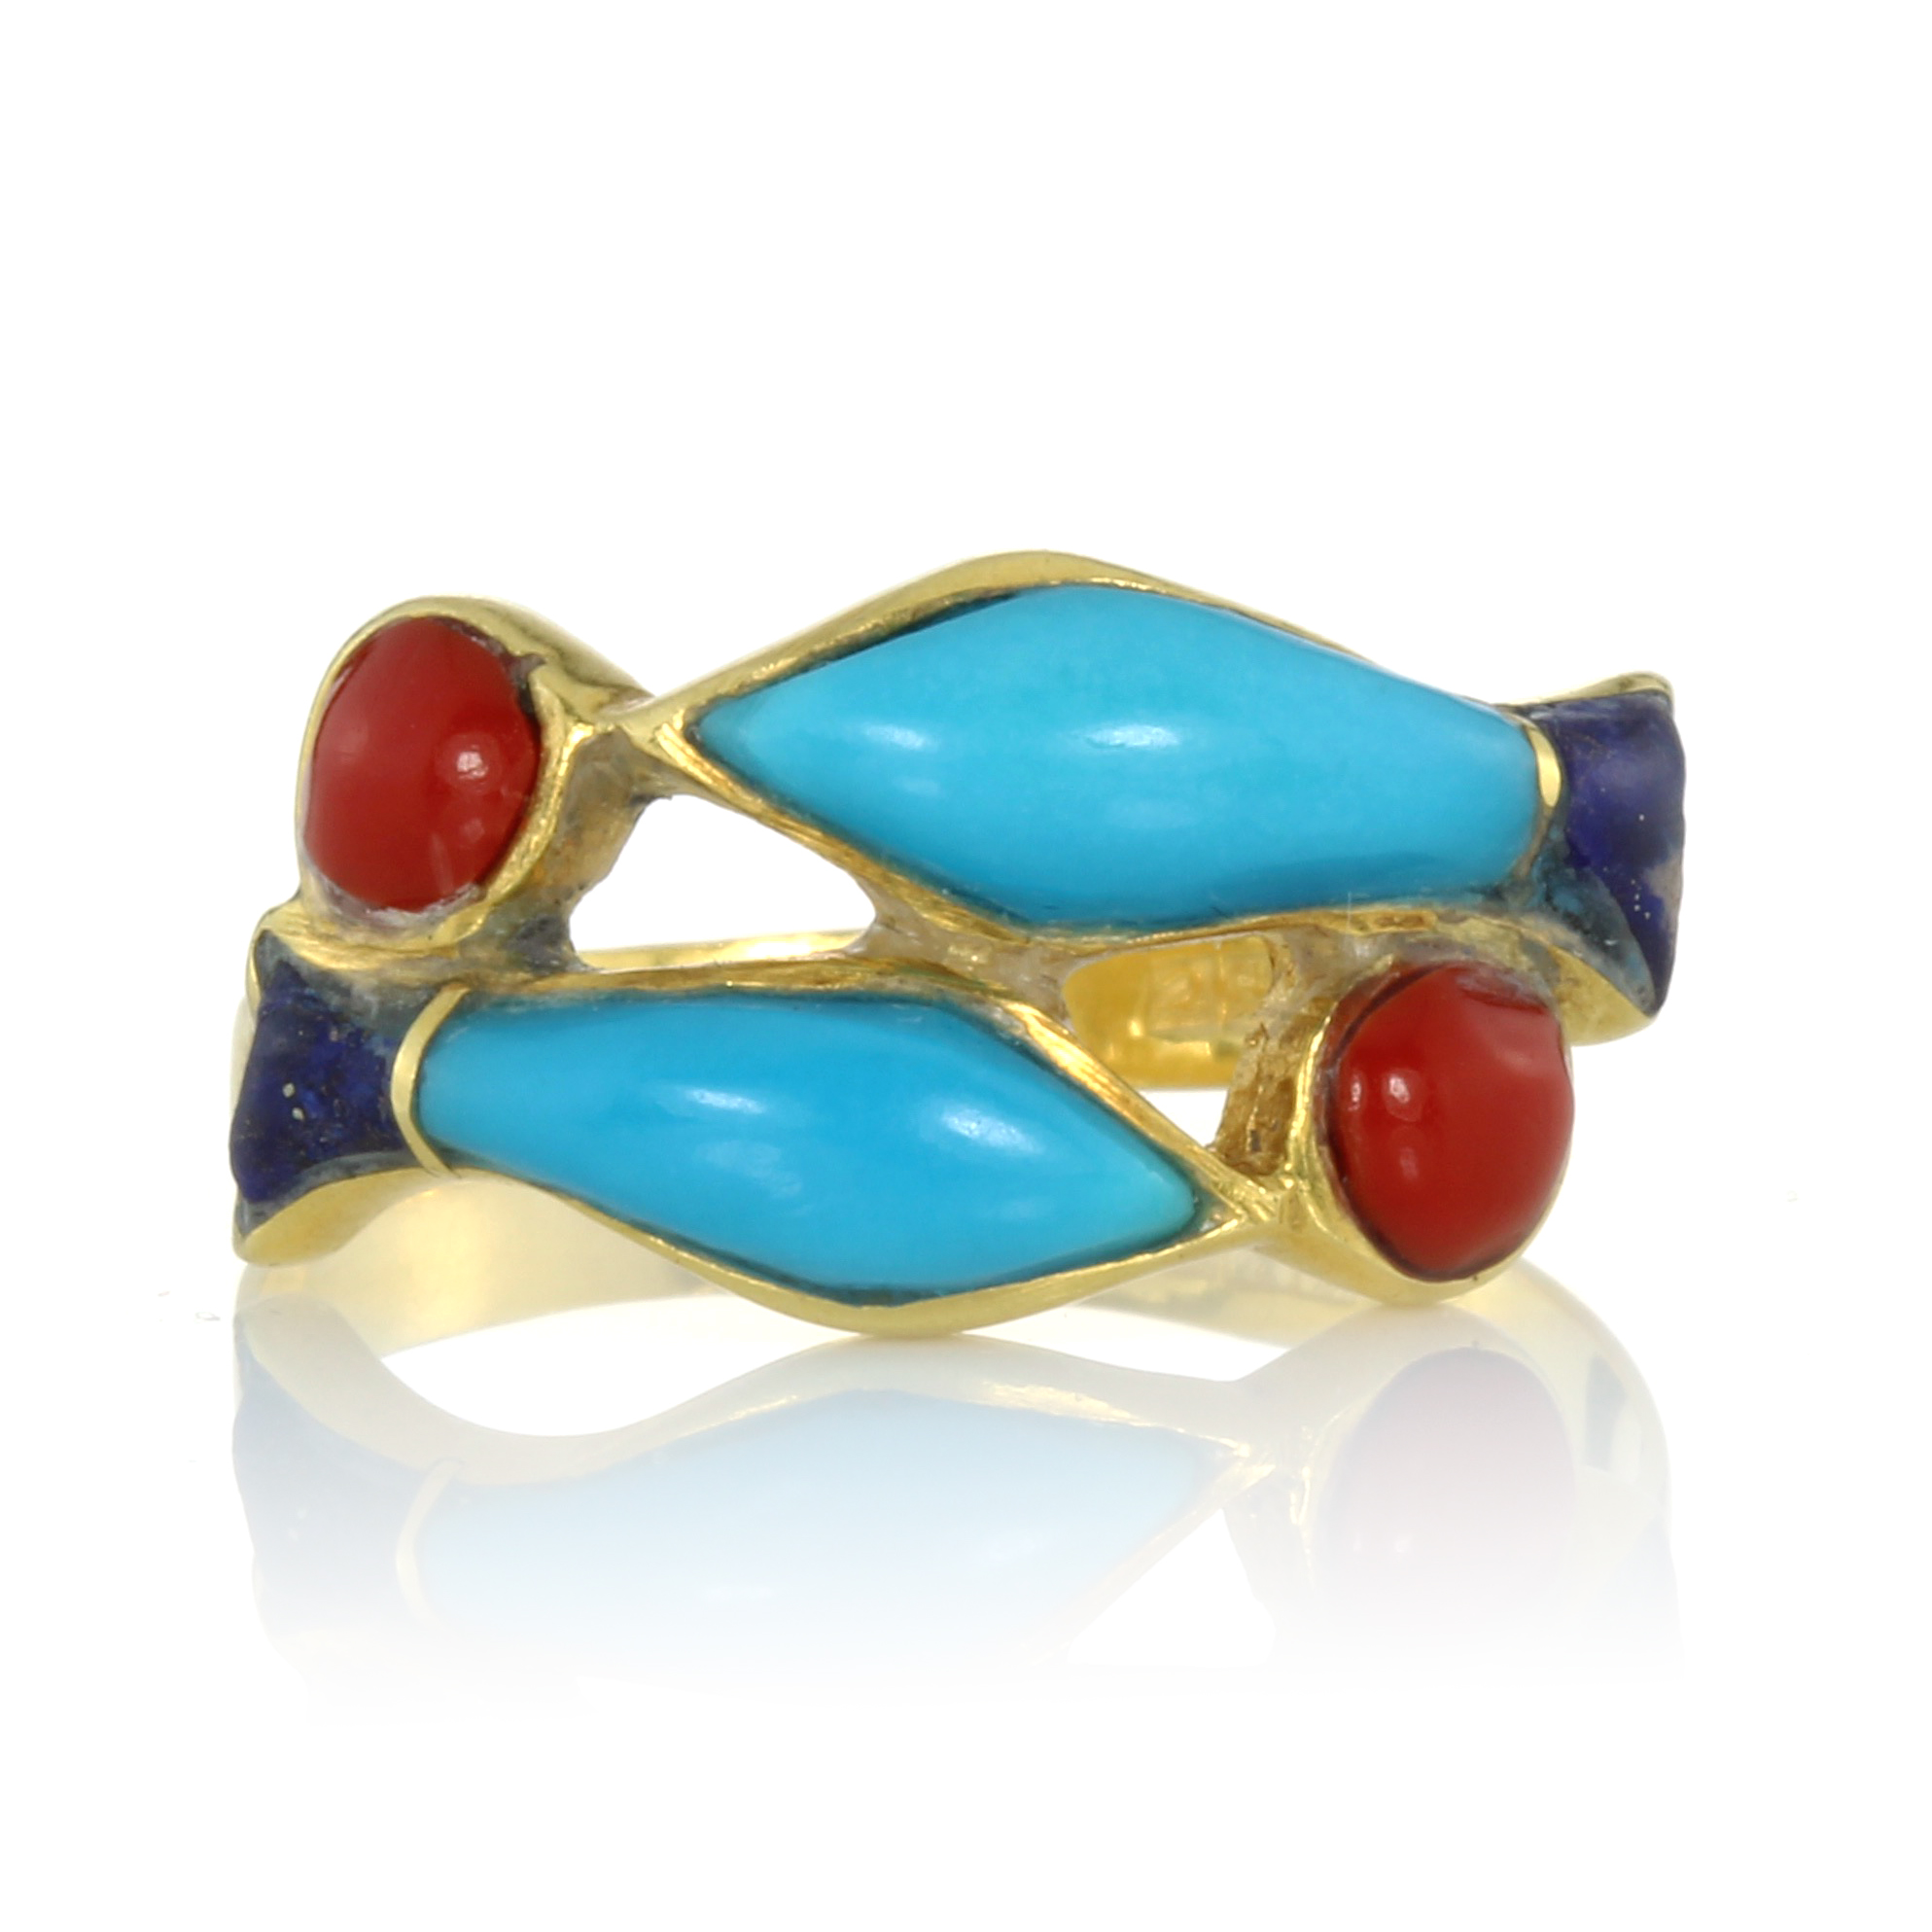 Los 15 - A TURQUOISE, CORAL AND LAPIS LAZULI PISCES RING designed with two fish swimming beside each other in